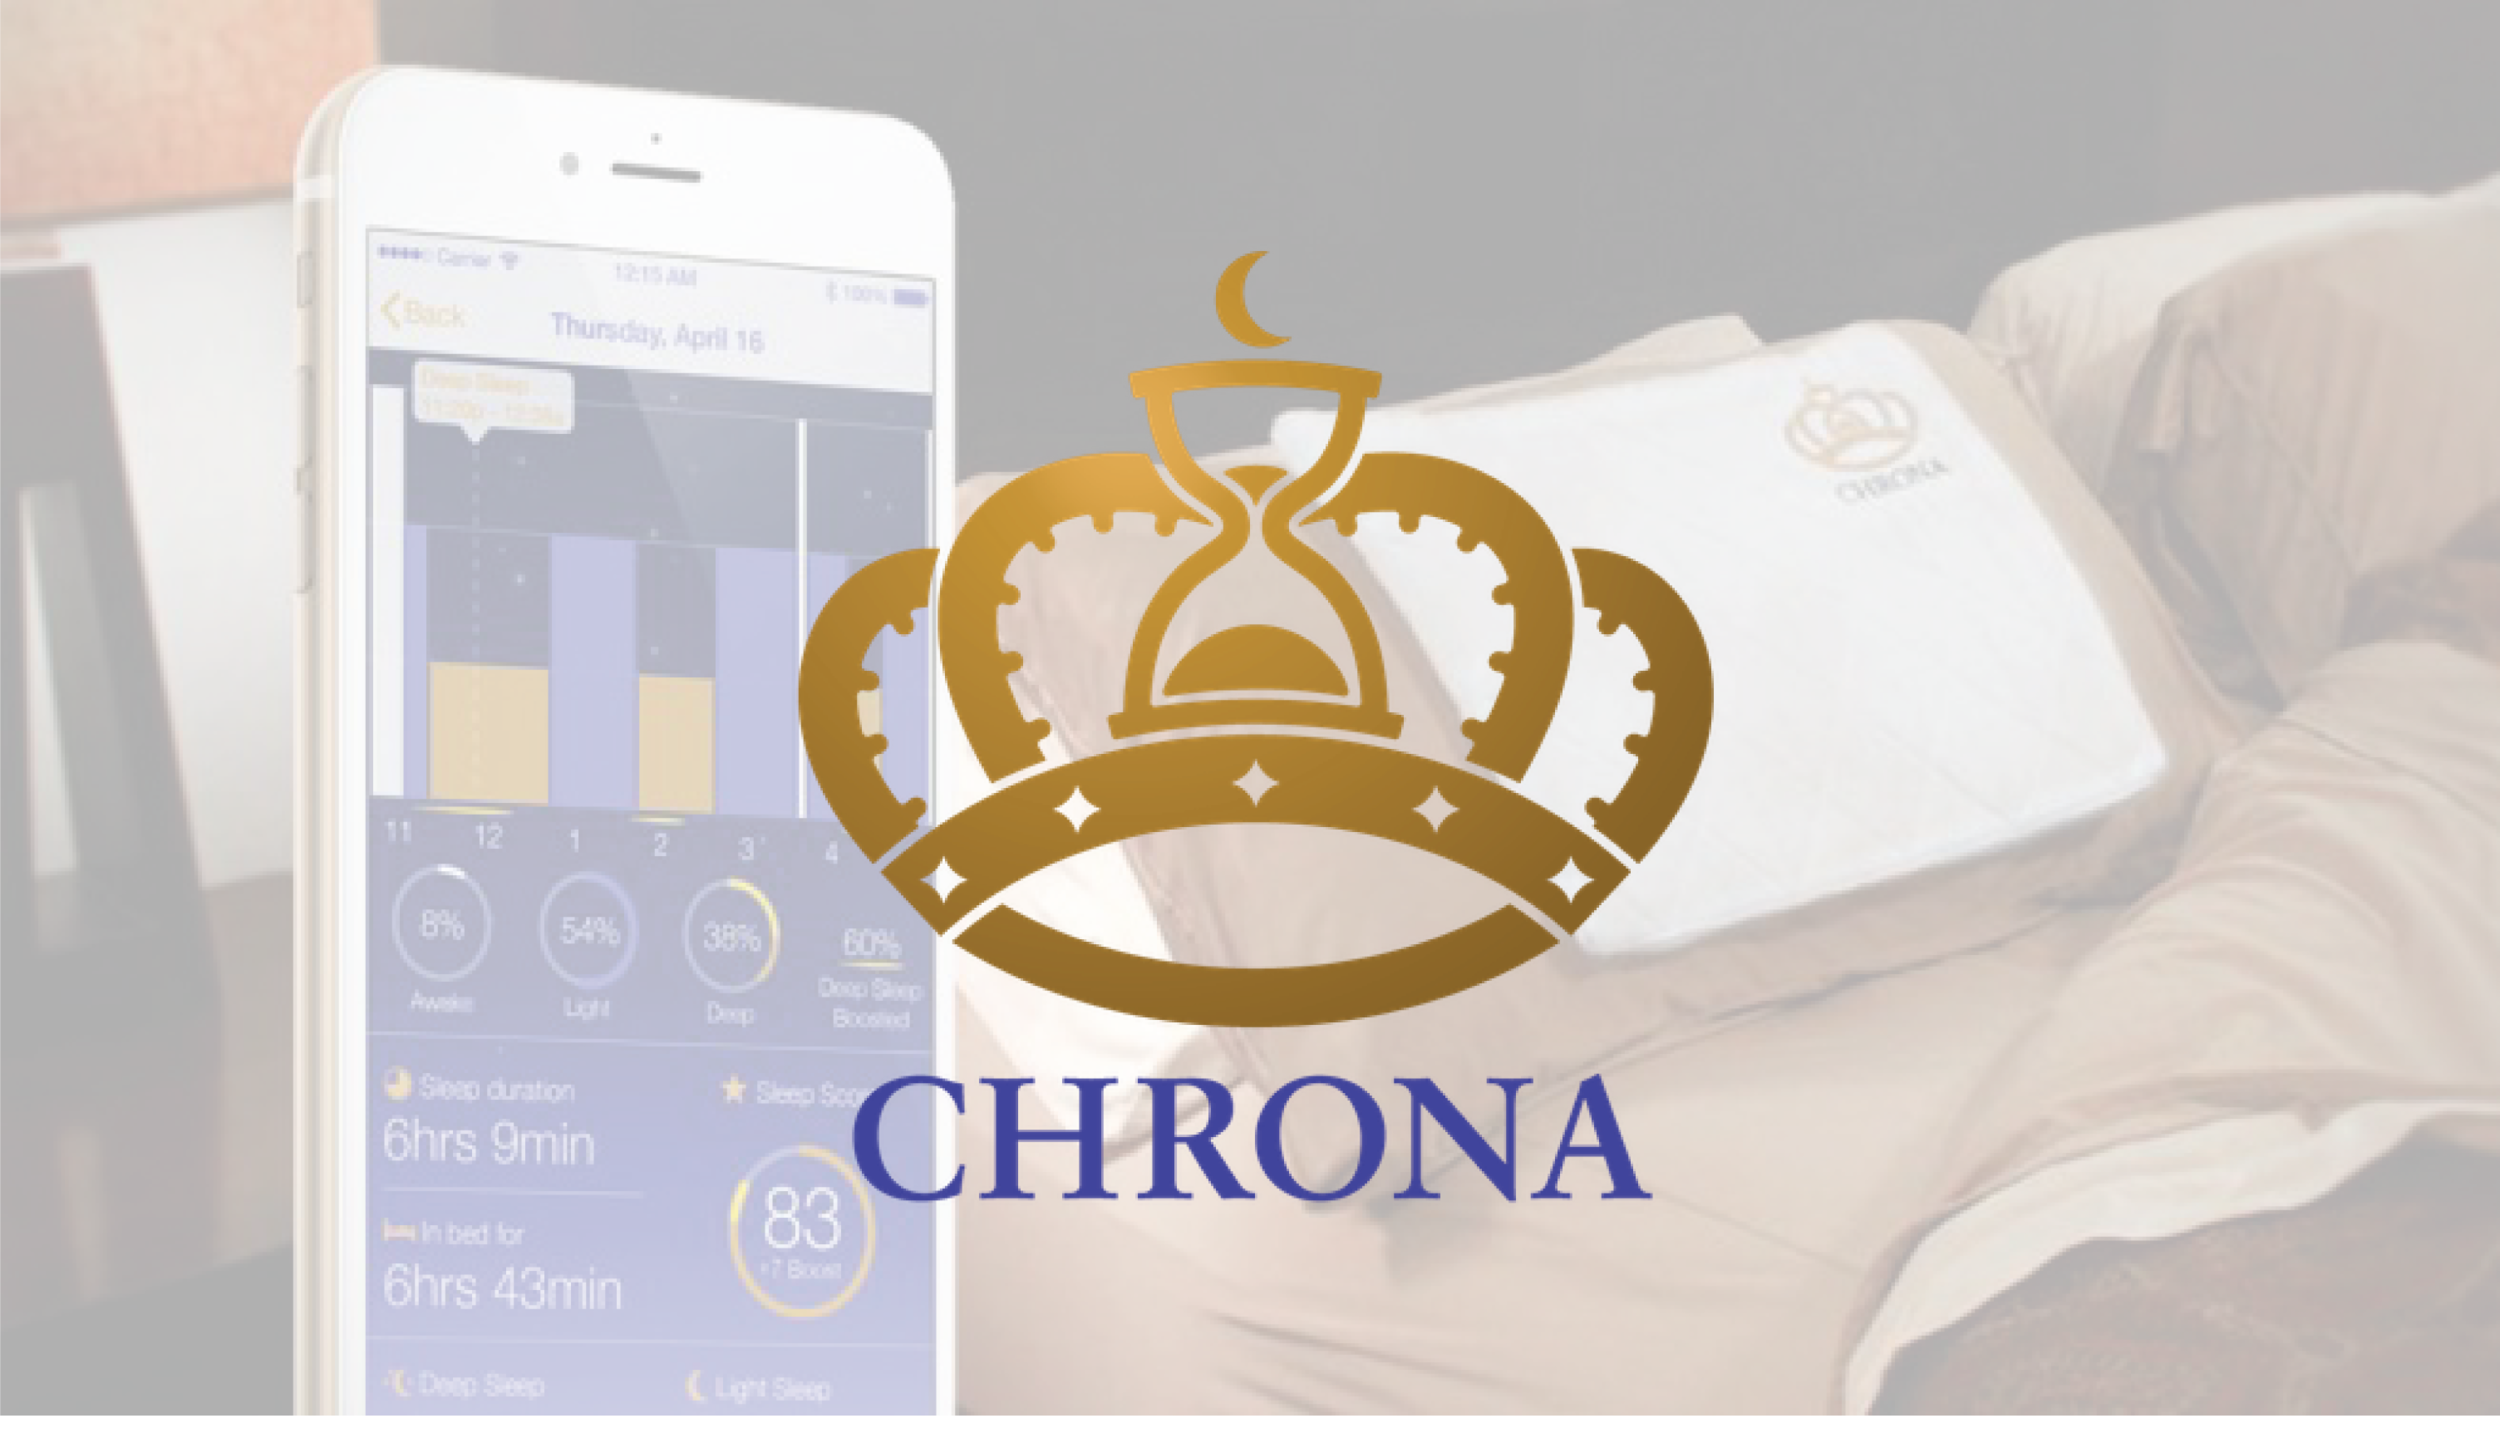 Chrona Sleep's proprietary sleep therapy technology applies acoustic neuromodulation to enhance sleep in real time.